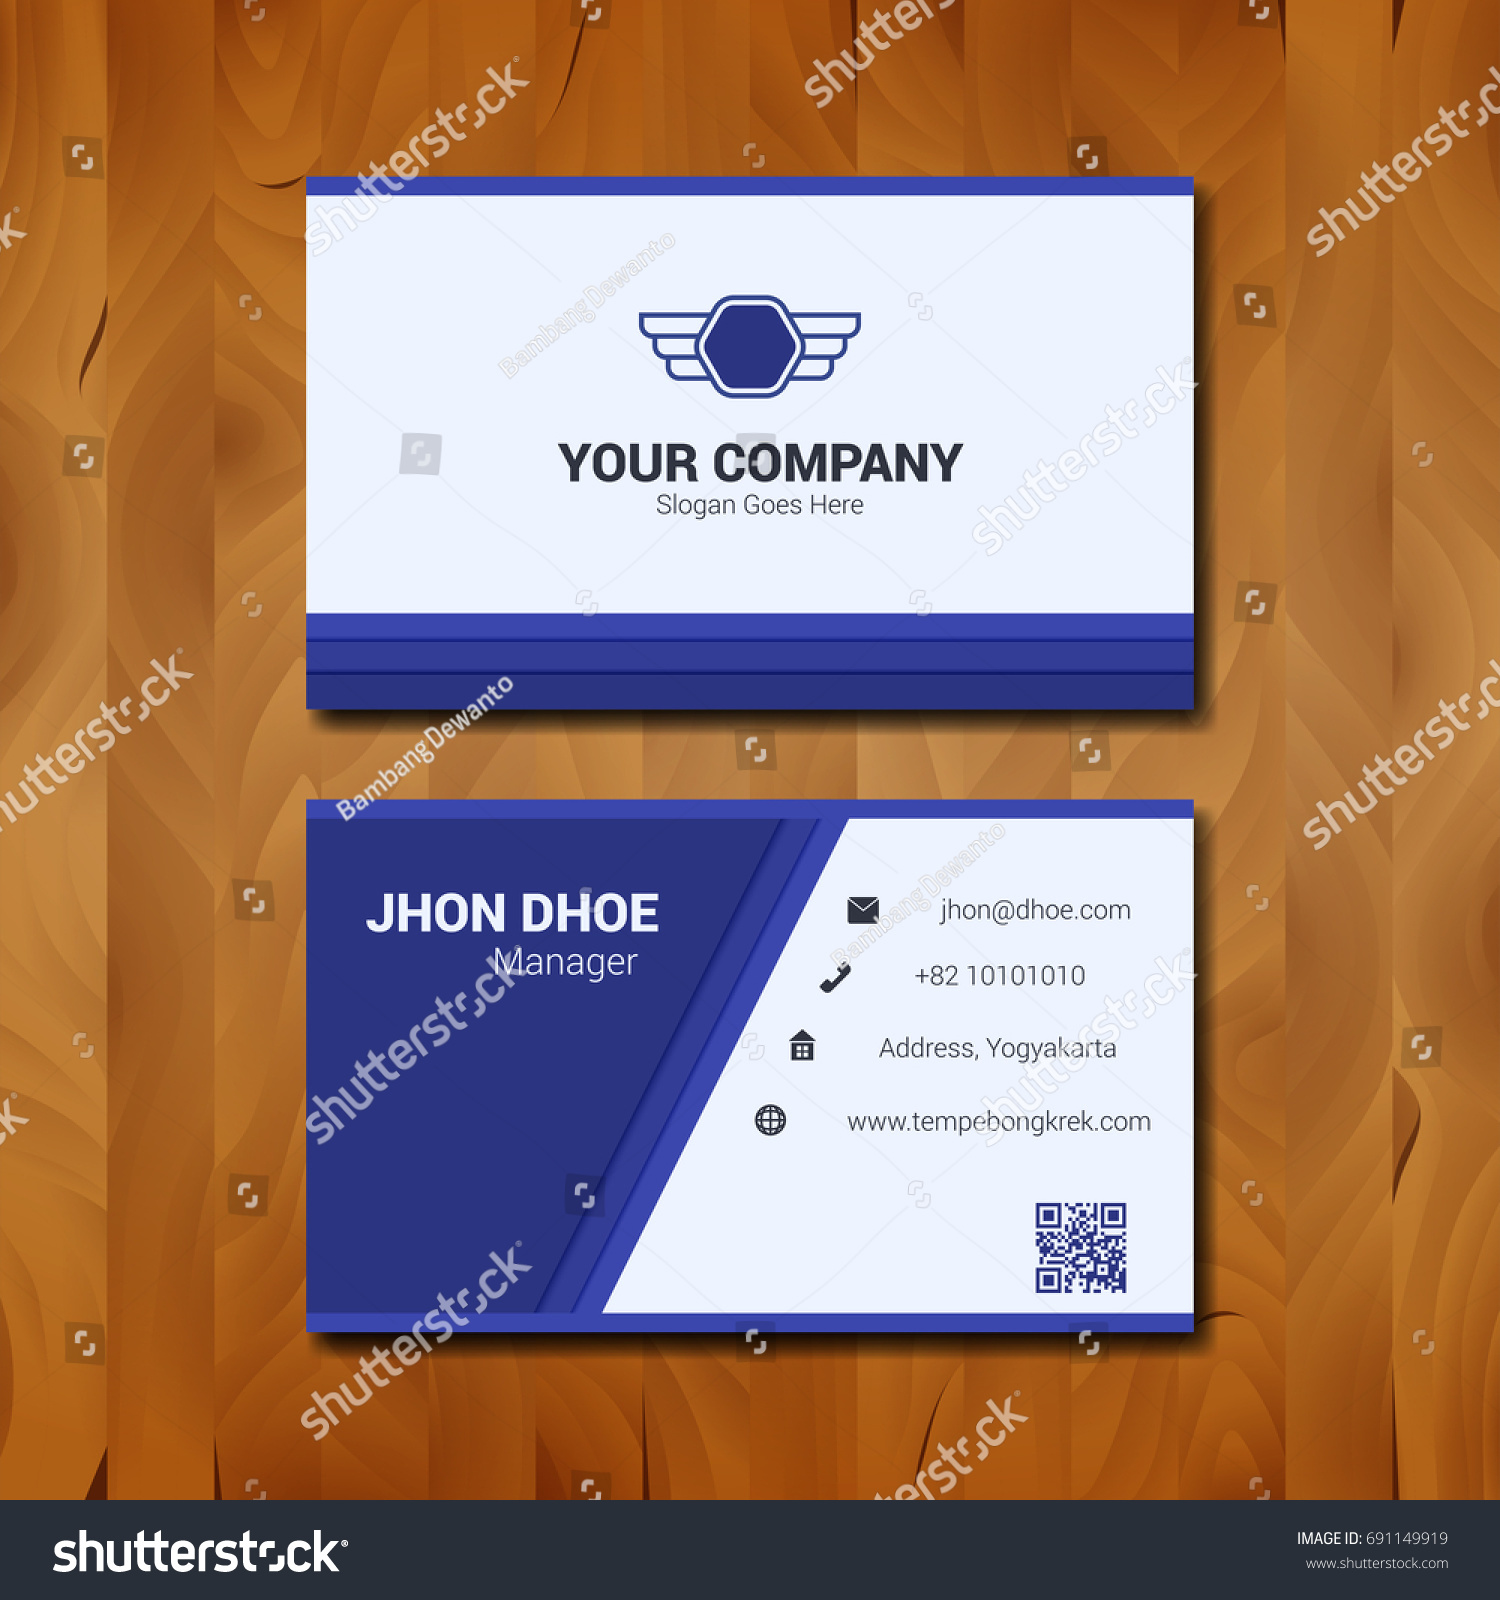 Simple business card template design company stock vector 691149919 simple business card template design with company logo on wood background accmission Choice Image